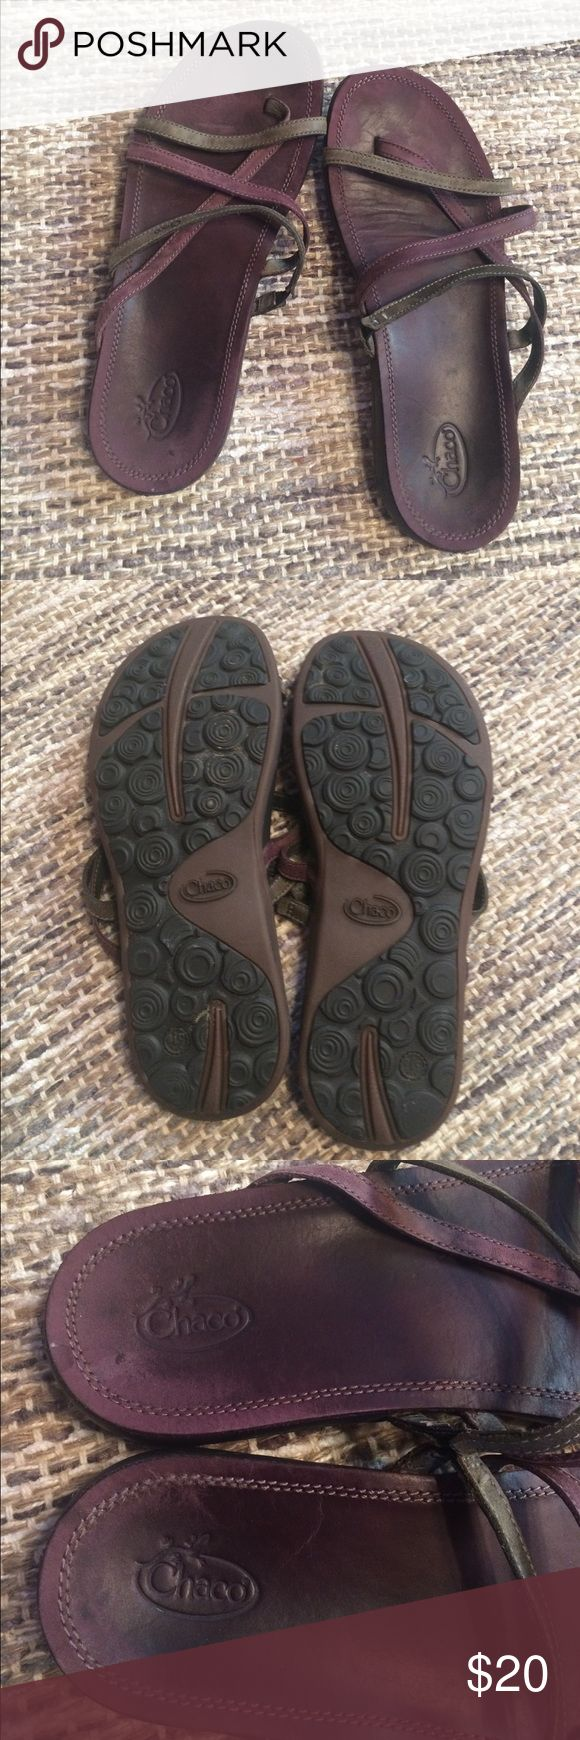 Chaco Flip Flops, purple leather, women's size 9 Good used condition, structurally sound, super comfortable! You will love them! Chaco Shoes Sandals